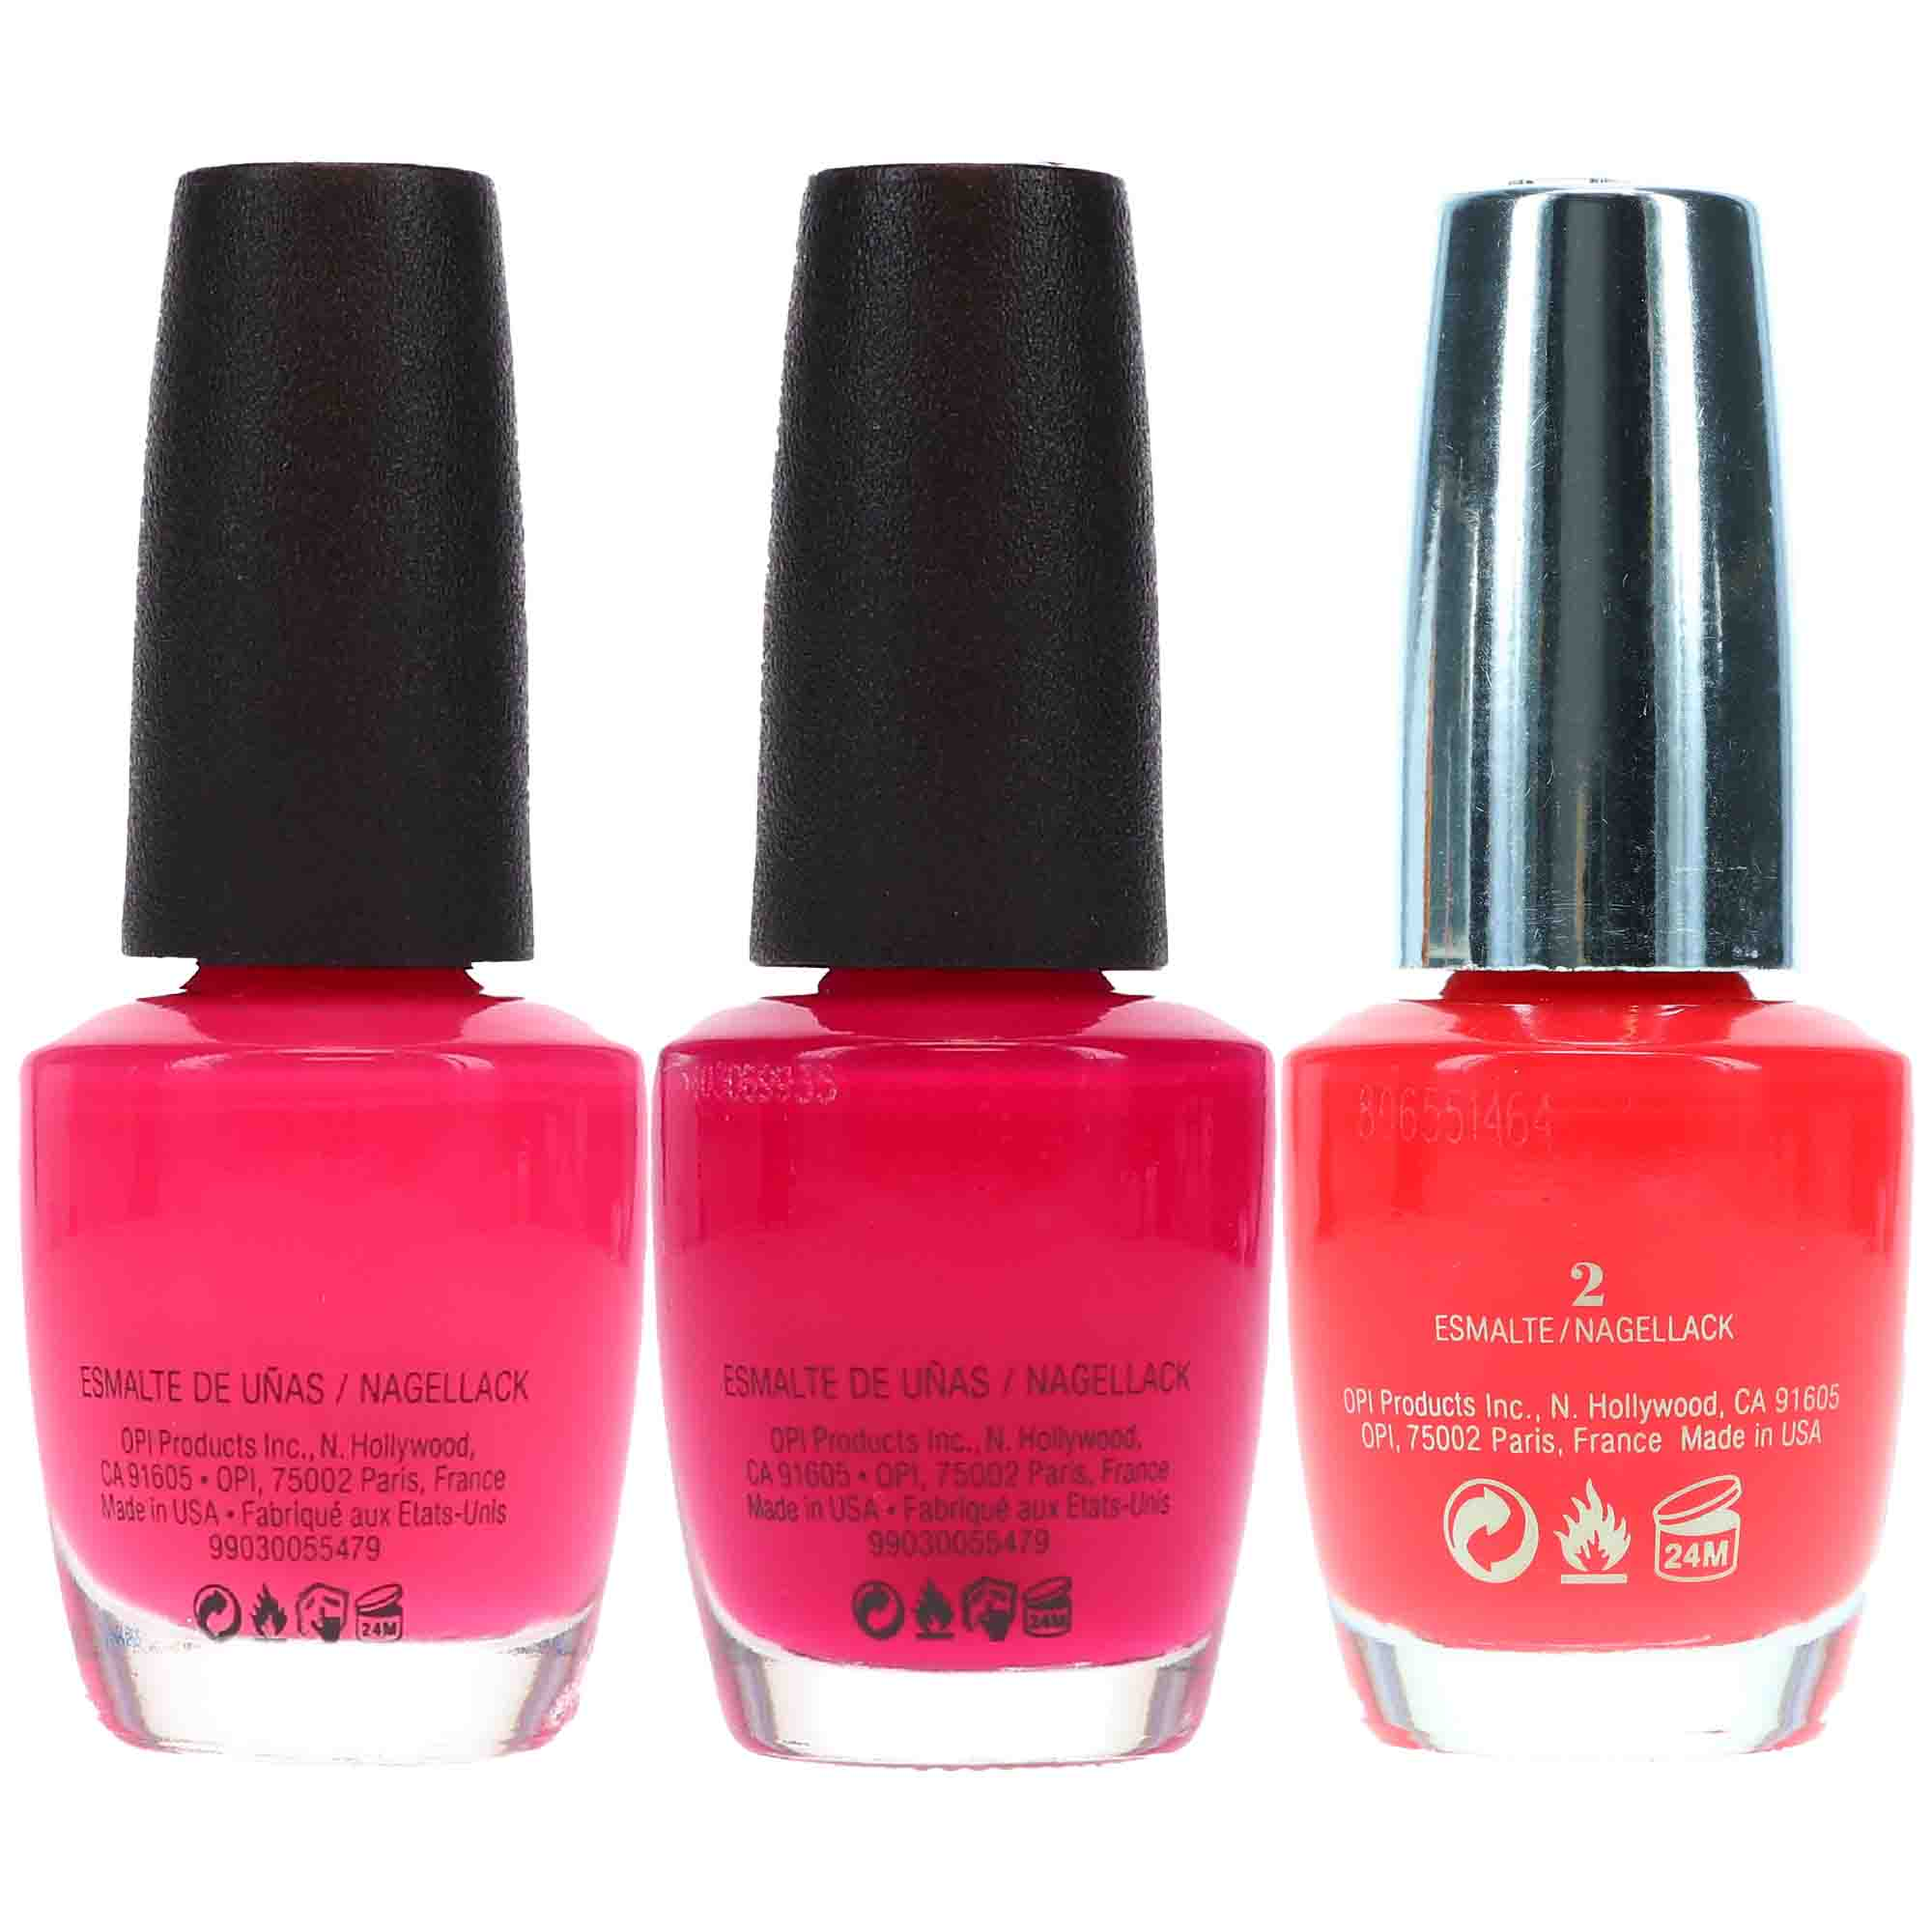 Opi Strawberry Margarita 5 Oz Opi Koala Beary 5 Oz Opi She Went On And On And On 5 Oz Pink Combo Set Lala Daisy